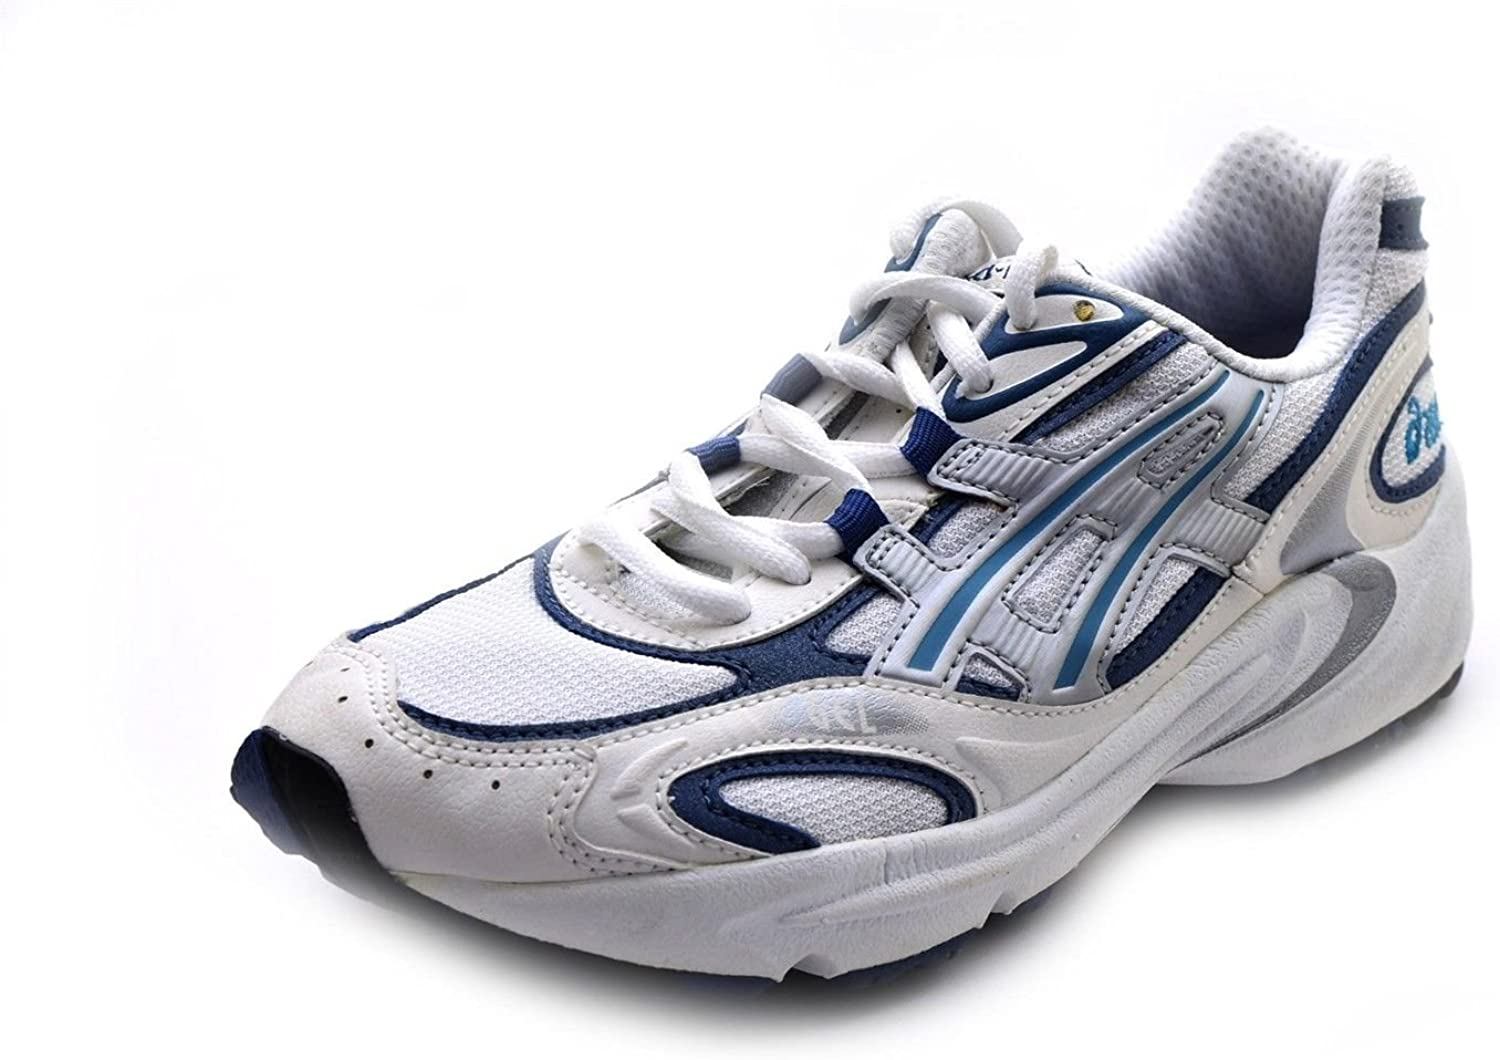 desagüe perjudicar Consultar  Amazon.com | ASICS Women's Running Shoes Gel Foundation IV White Silver  Blue 6 Medium | Running